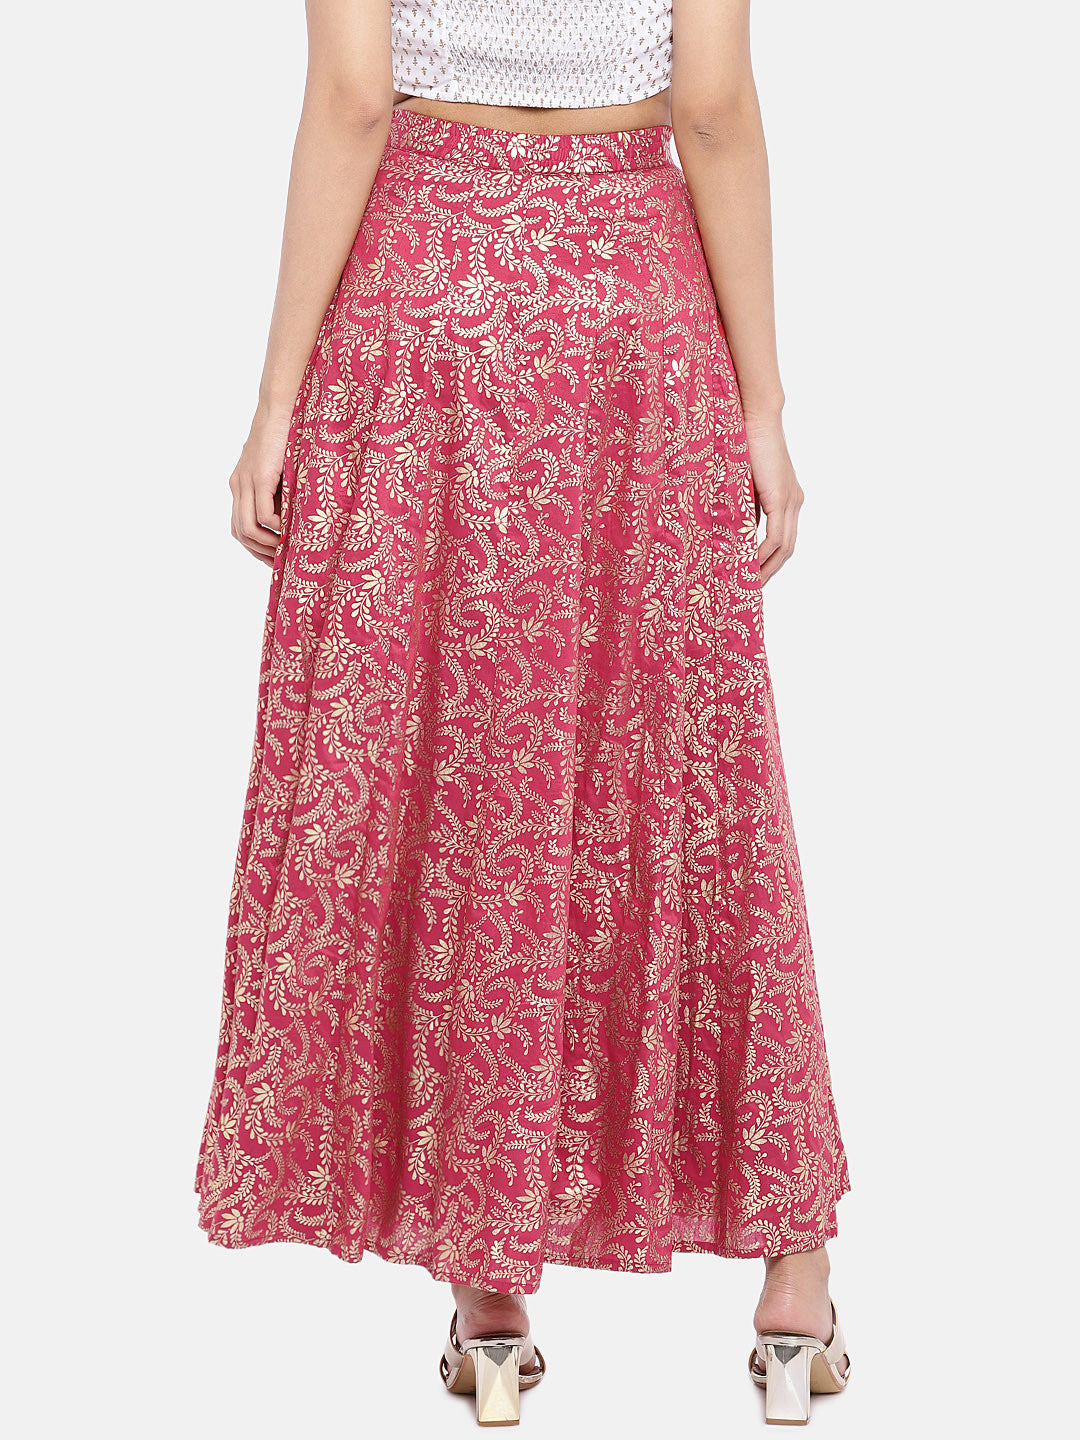 Pink & Gold-Toned Printed Flared Skirt-3